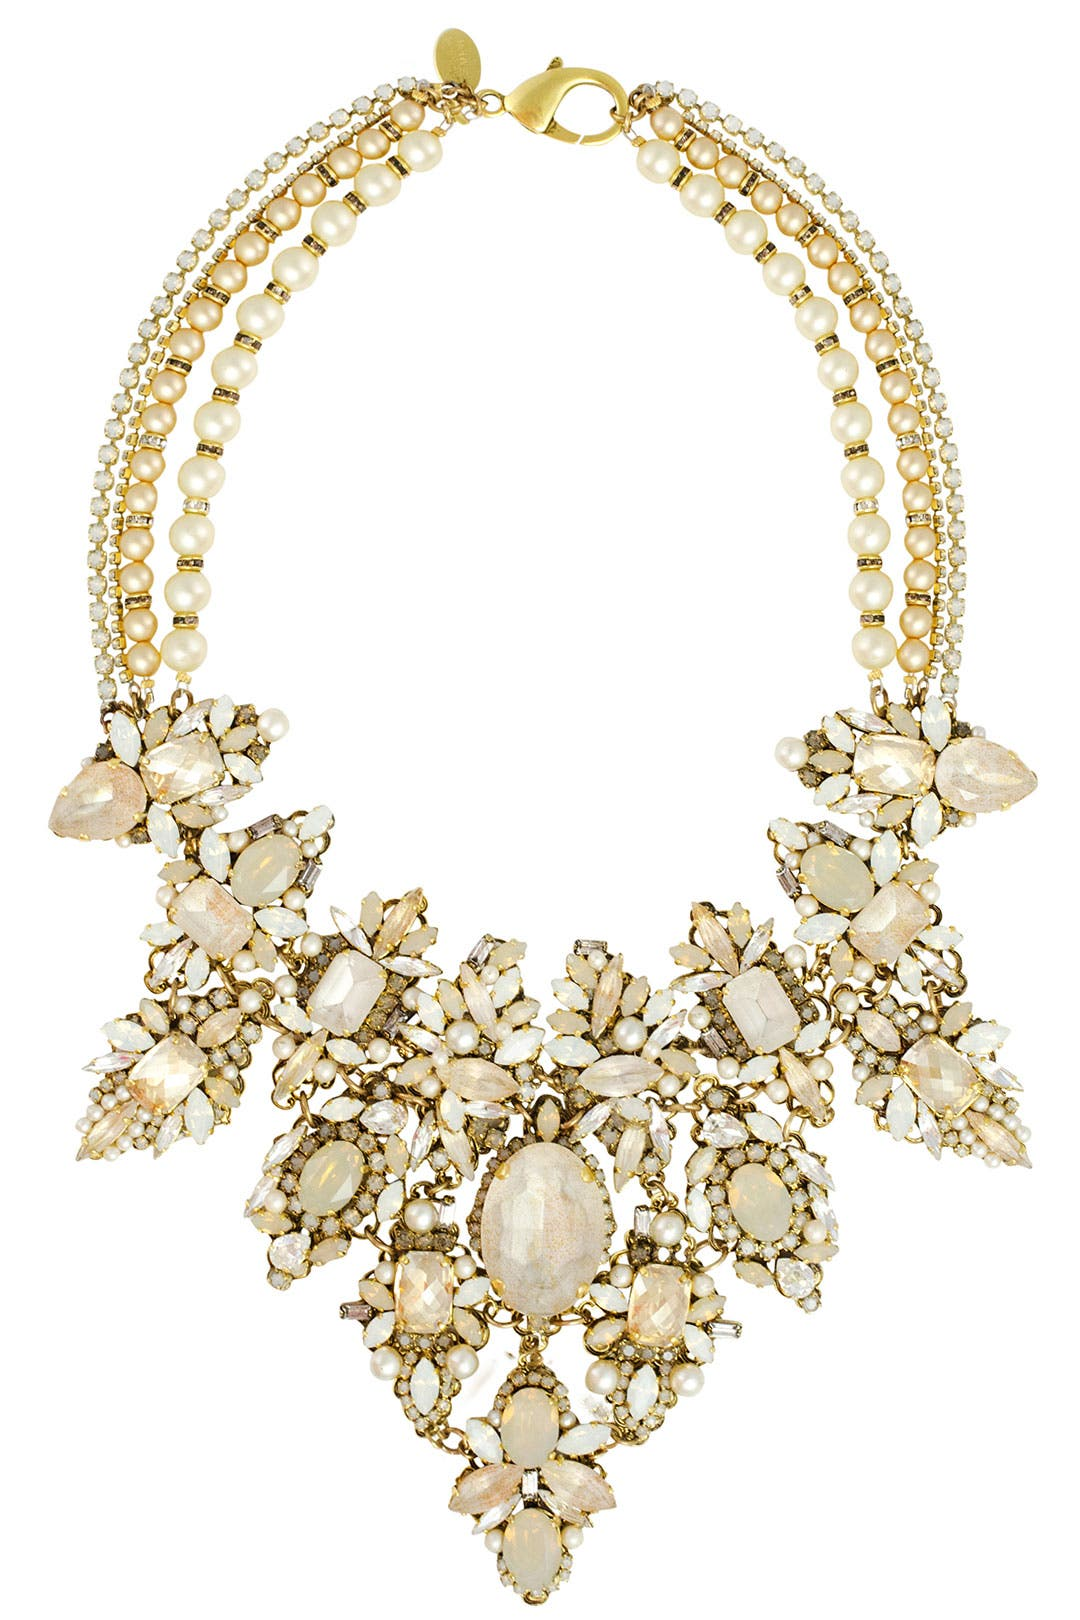 Girlie Queen Necklace by Erickson Beamon